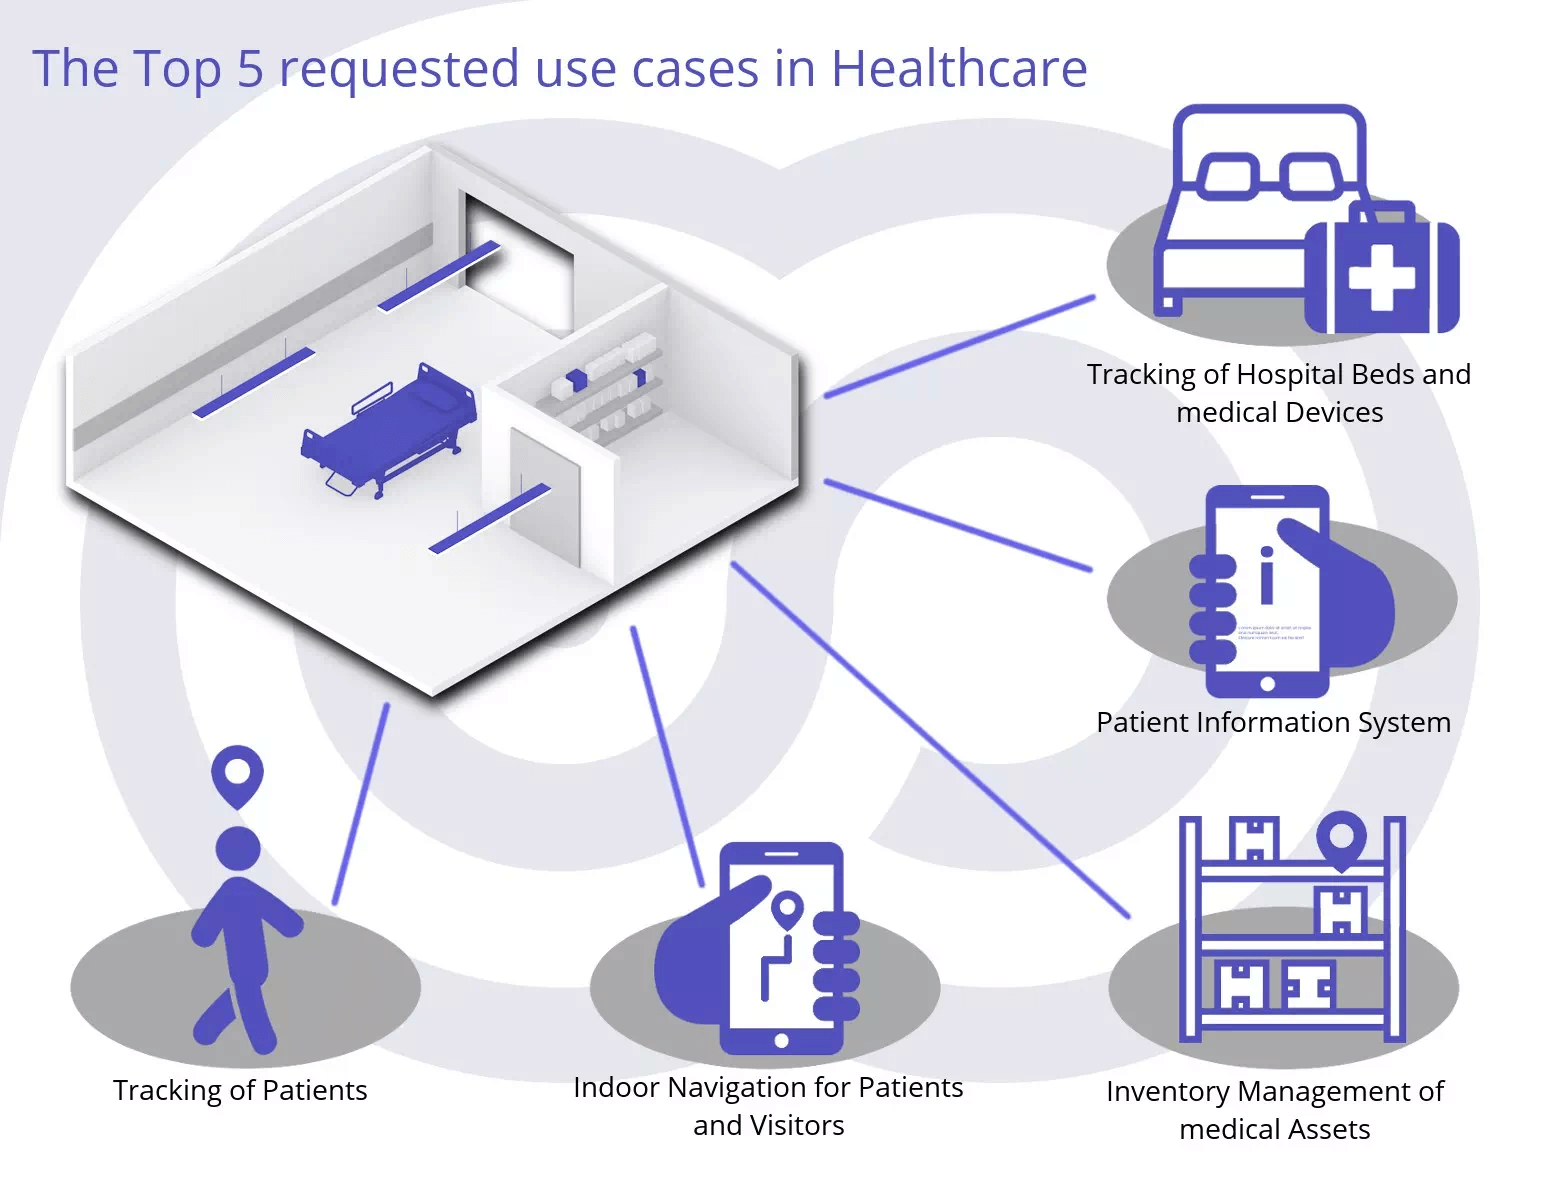 Top 5 Use Cases in Healthcare